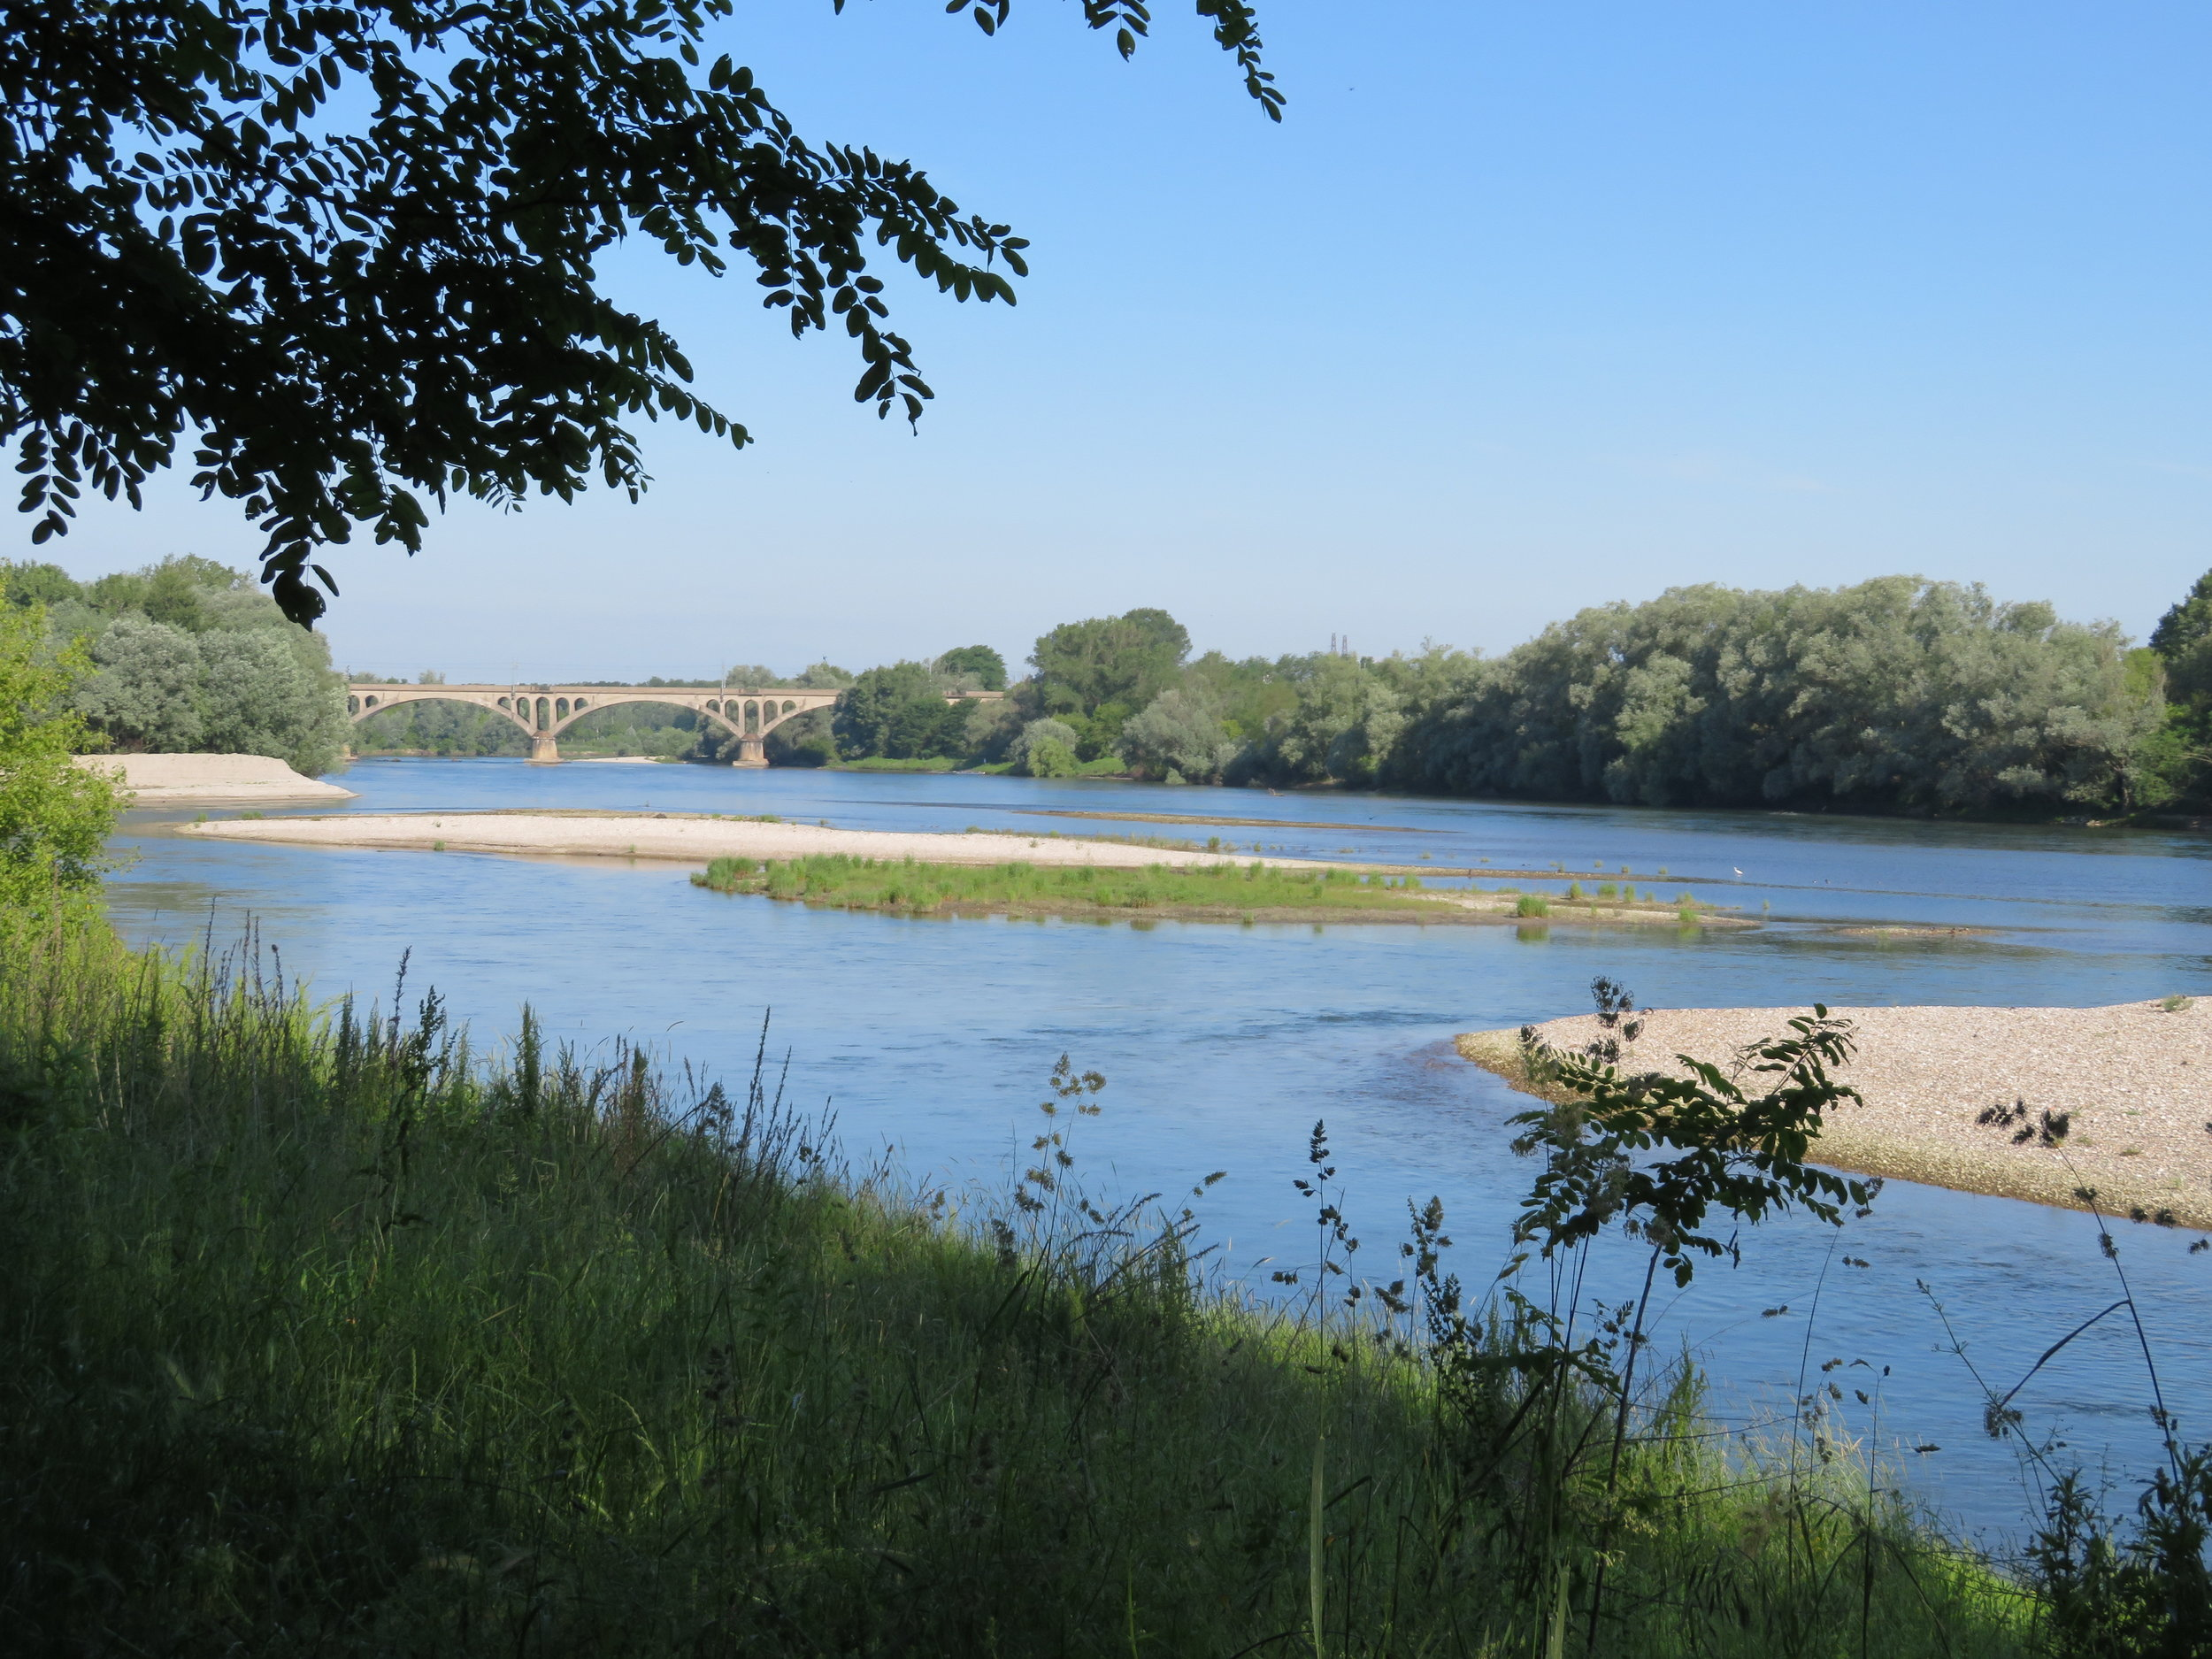 Walking along the Ticino River from Pavia